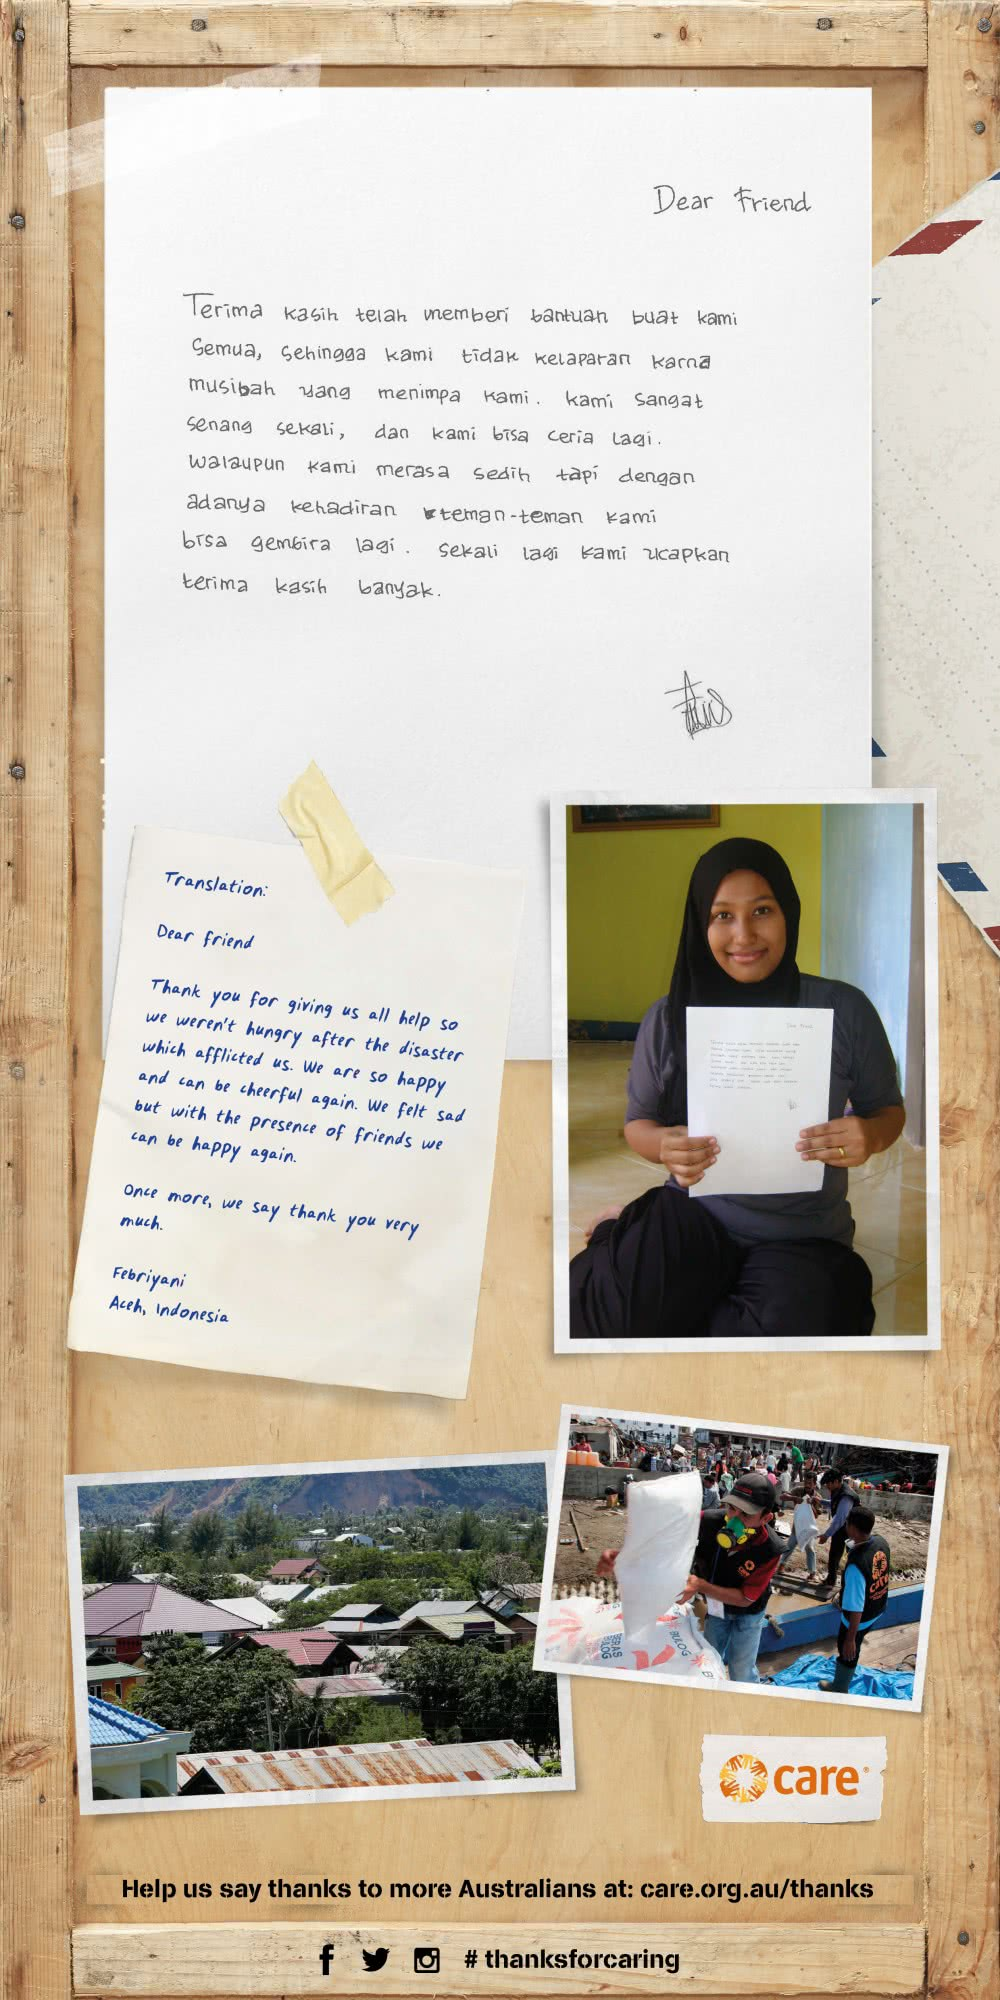 Thank you letter from Febriyani, Indonesia